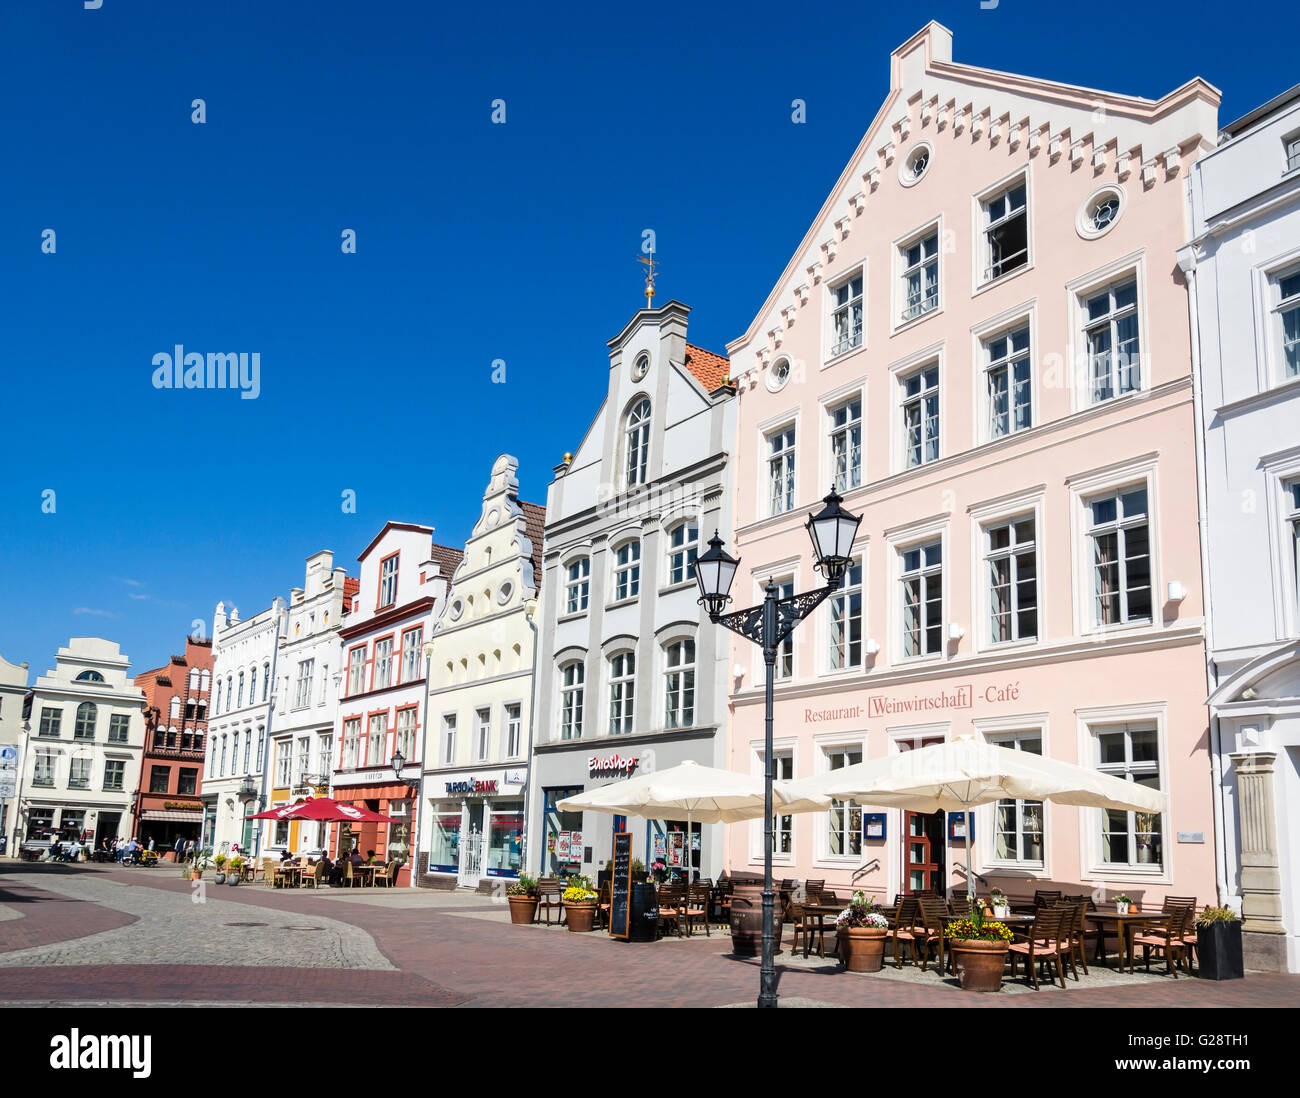 'Wasserkunst', water well, Historic downtown, marktplatz, market place, town square,  Wismar, Germany. - Stock Image